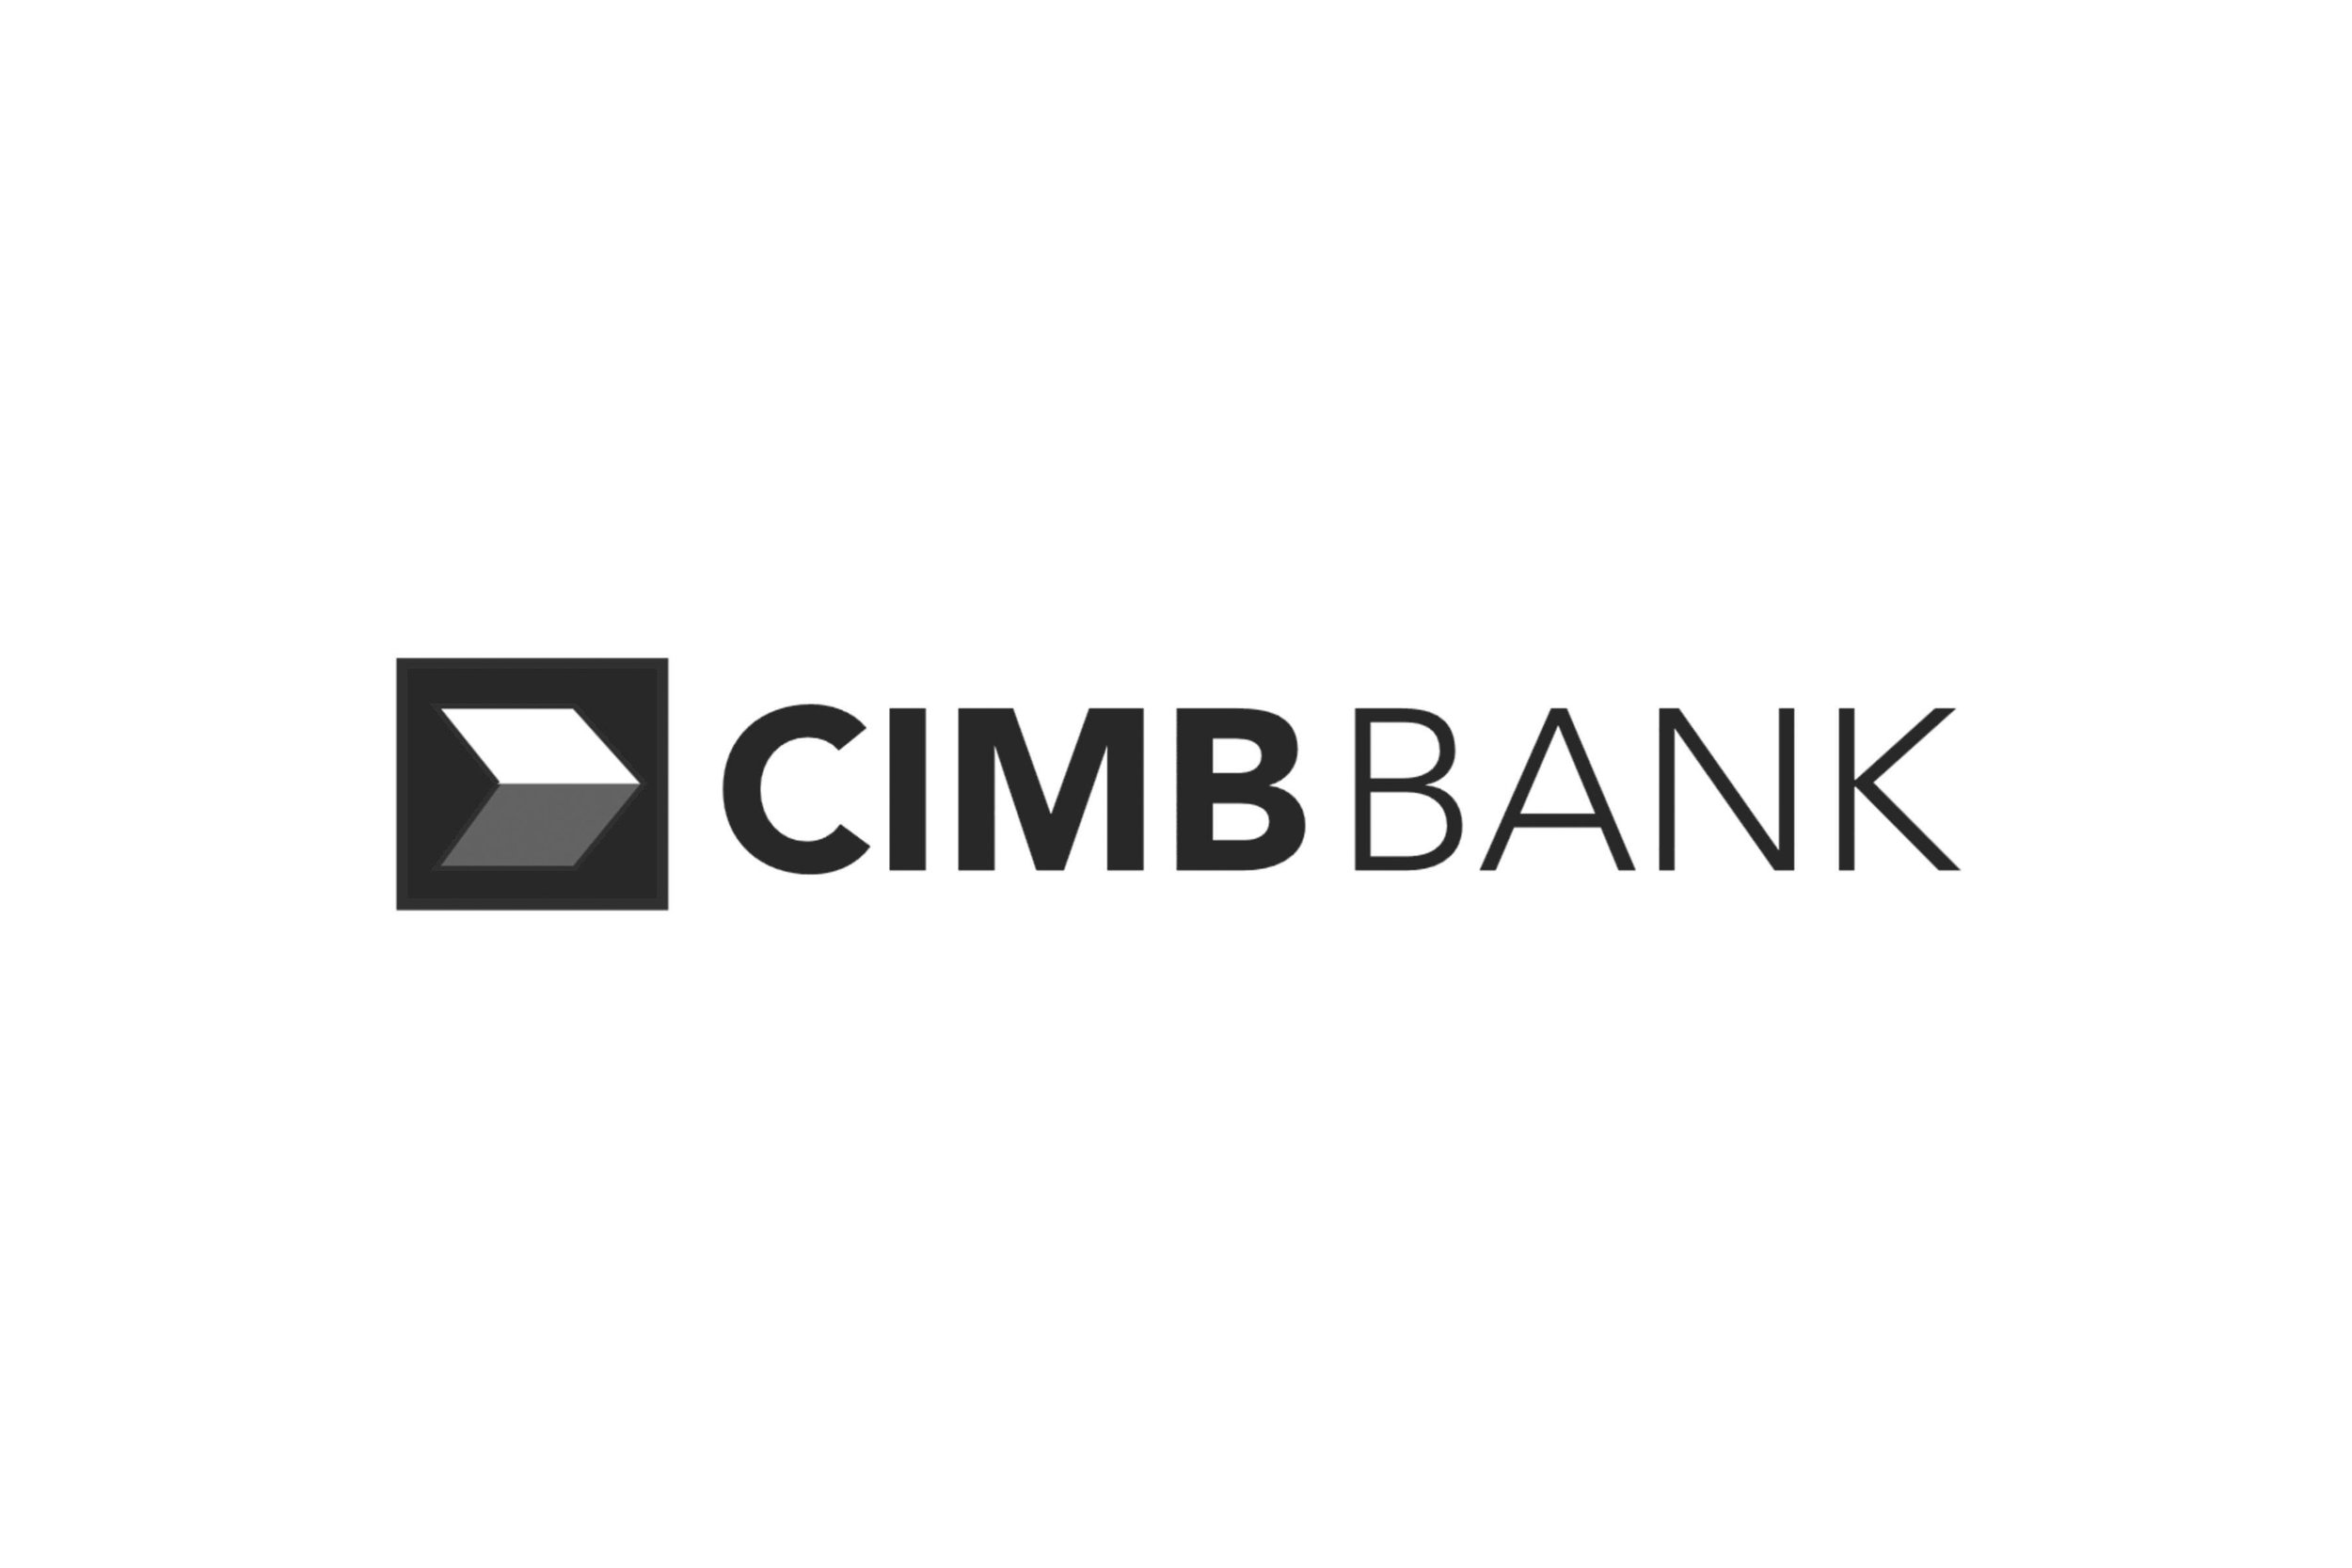 Untitled1_0000s_0008_JEB-ClientLogos_0001s_0008_CIMB_Bank1.png.jpg.jpg